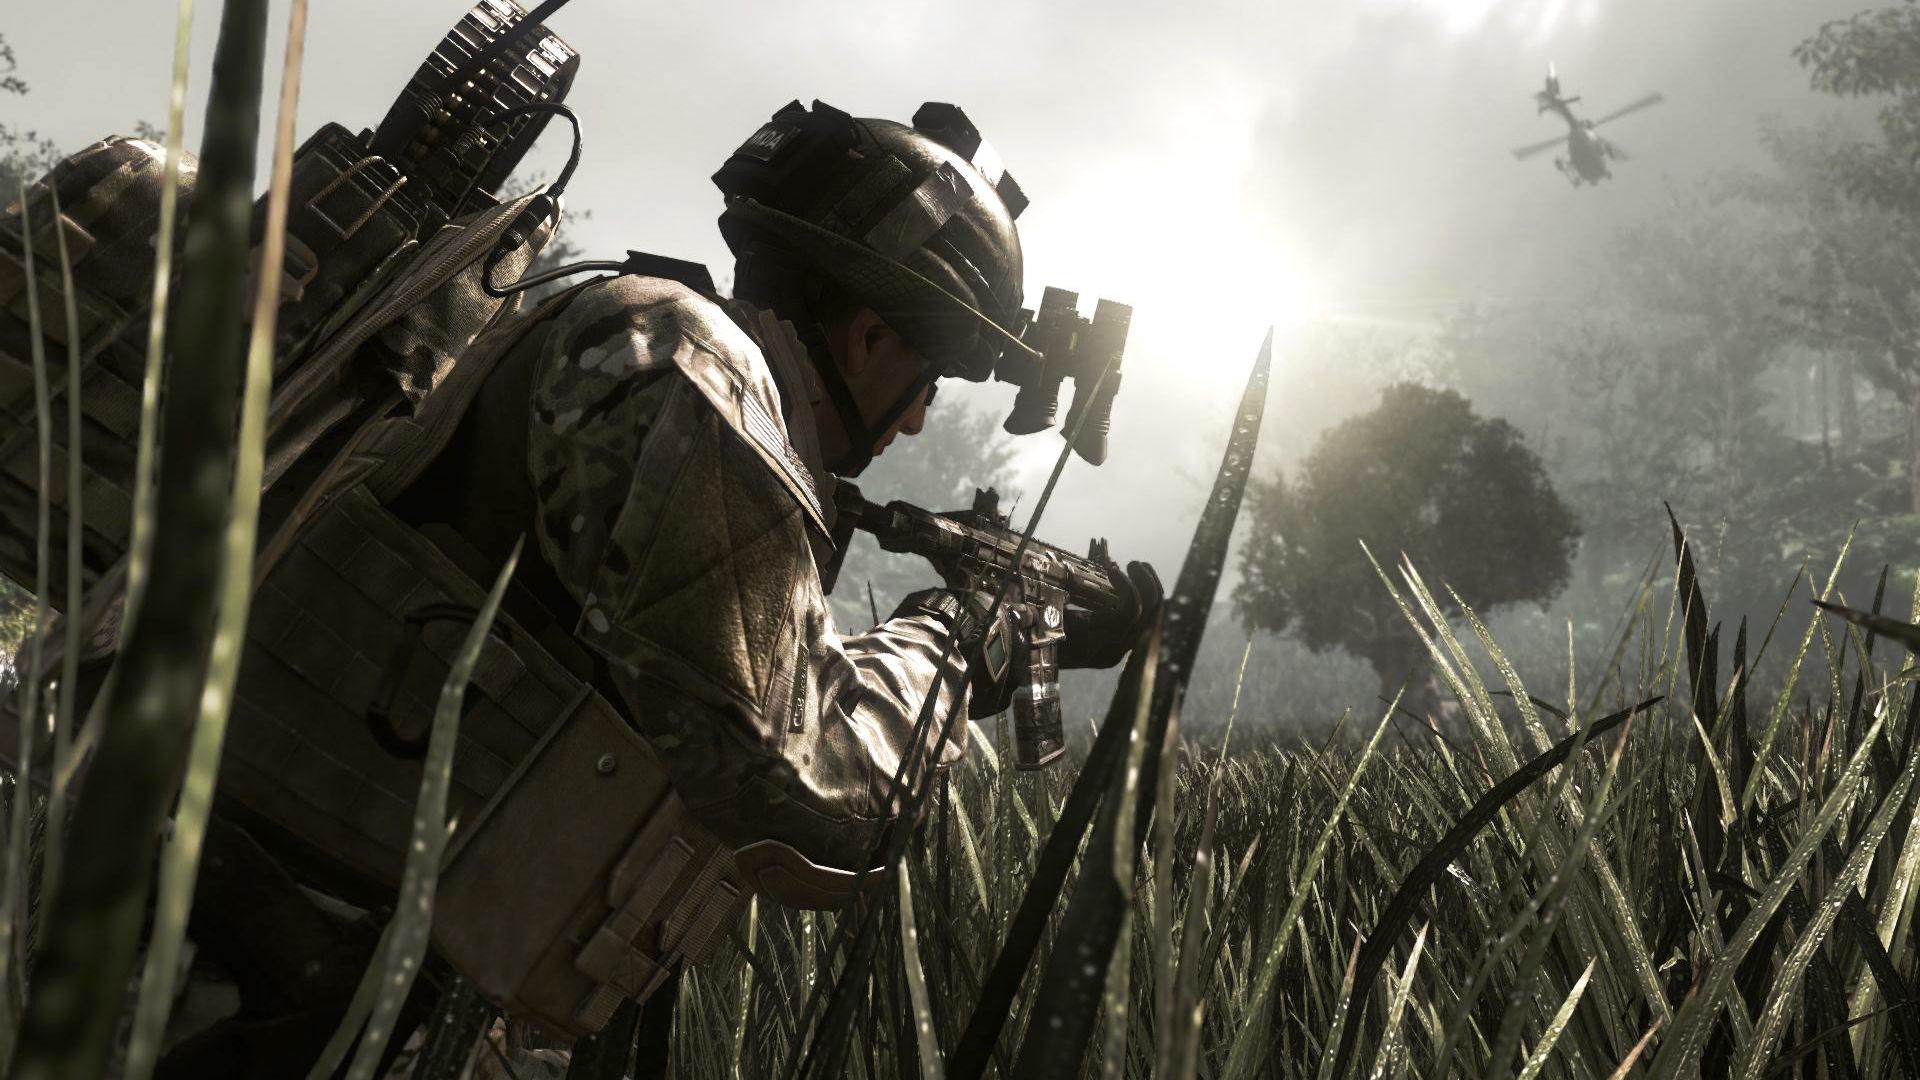 UK Magazine May Have Just Leaked The Next Call Of Duty Call of Duty Ghosts PC